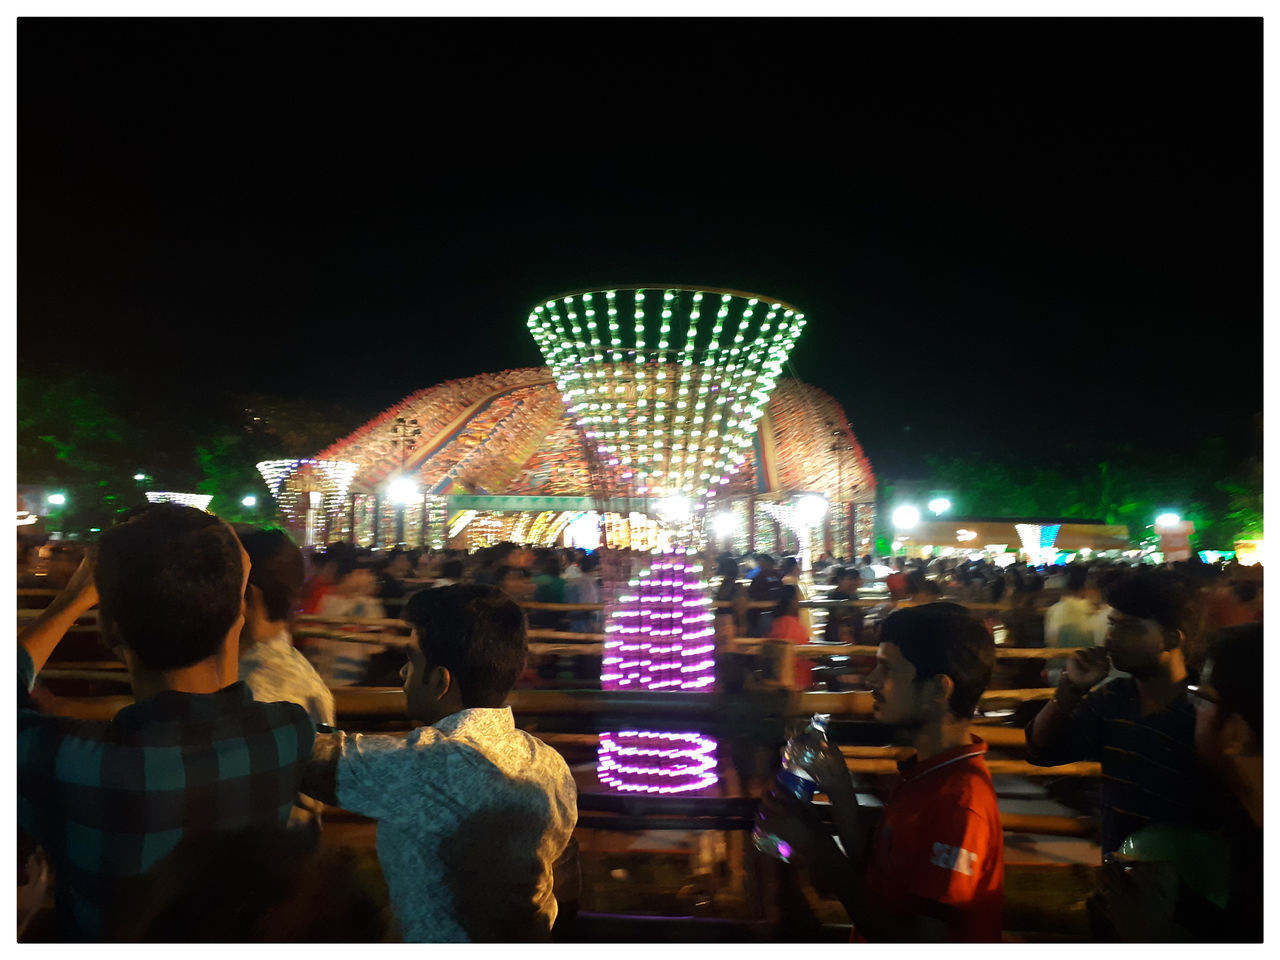 REAR VIEW OF PEOPLE AT AMUSEMENT PARK